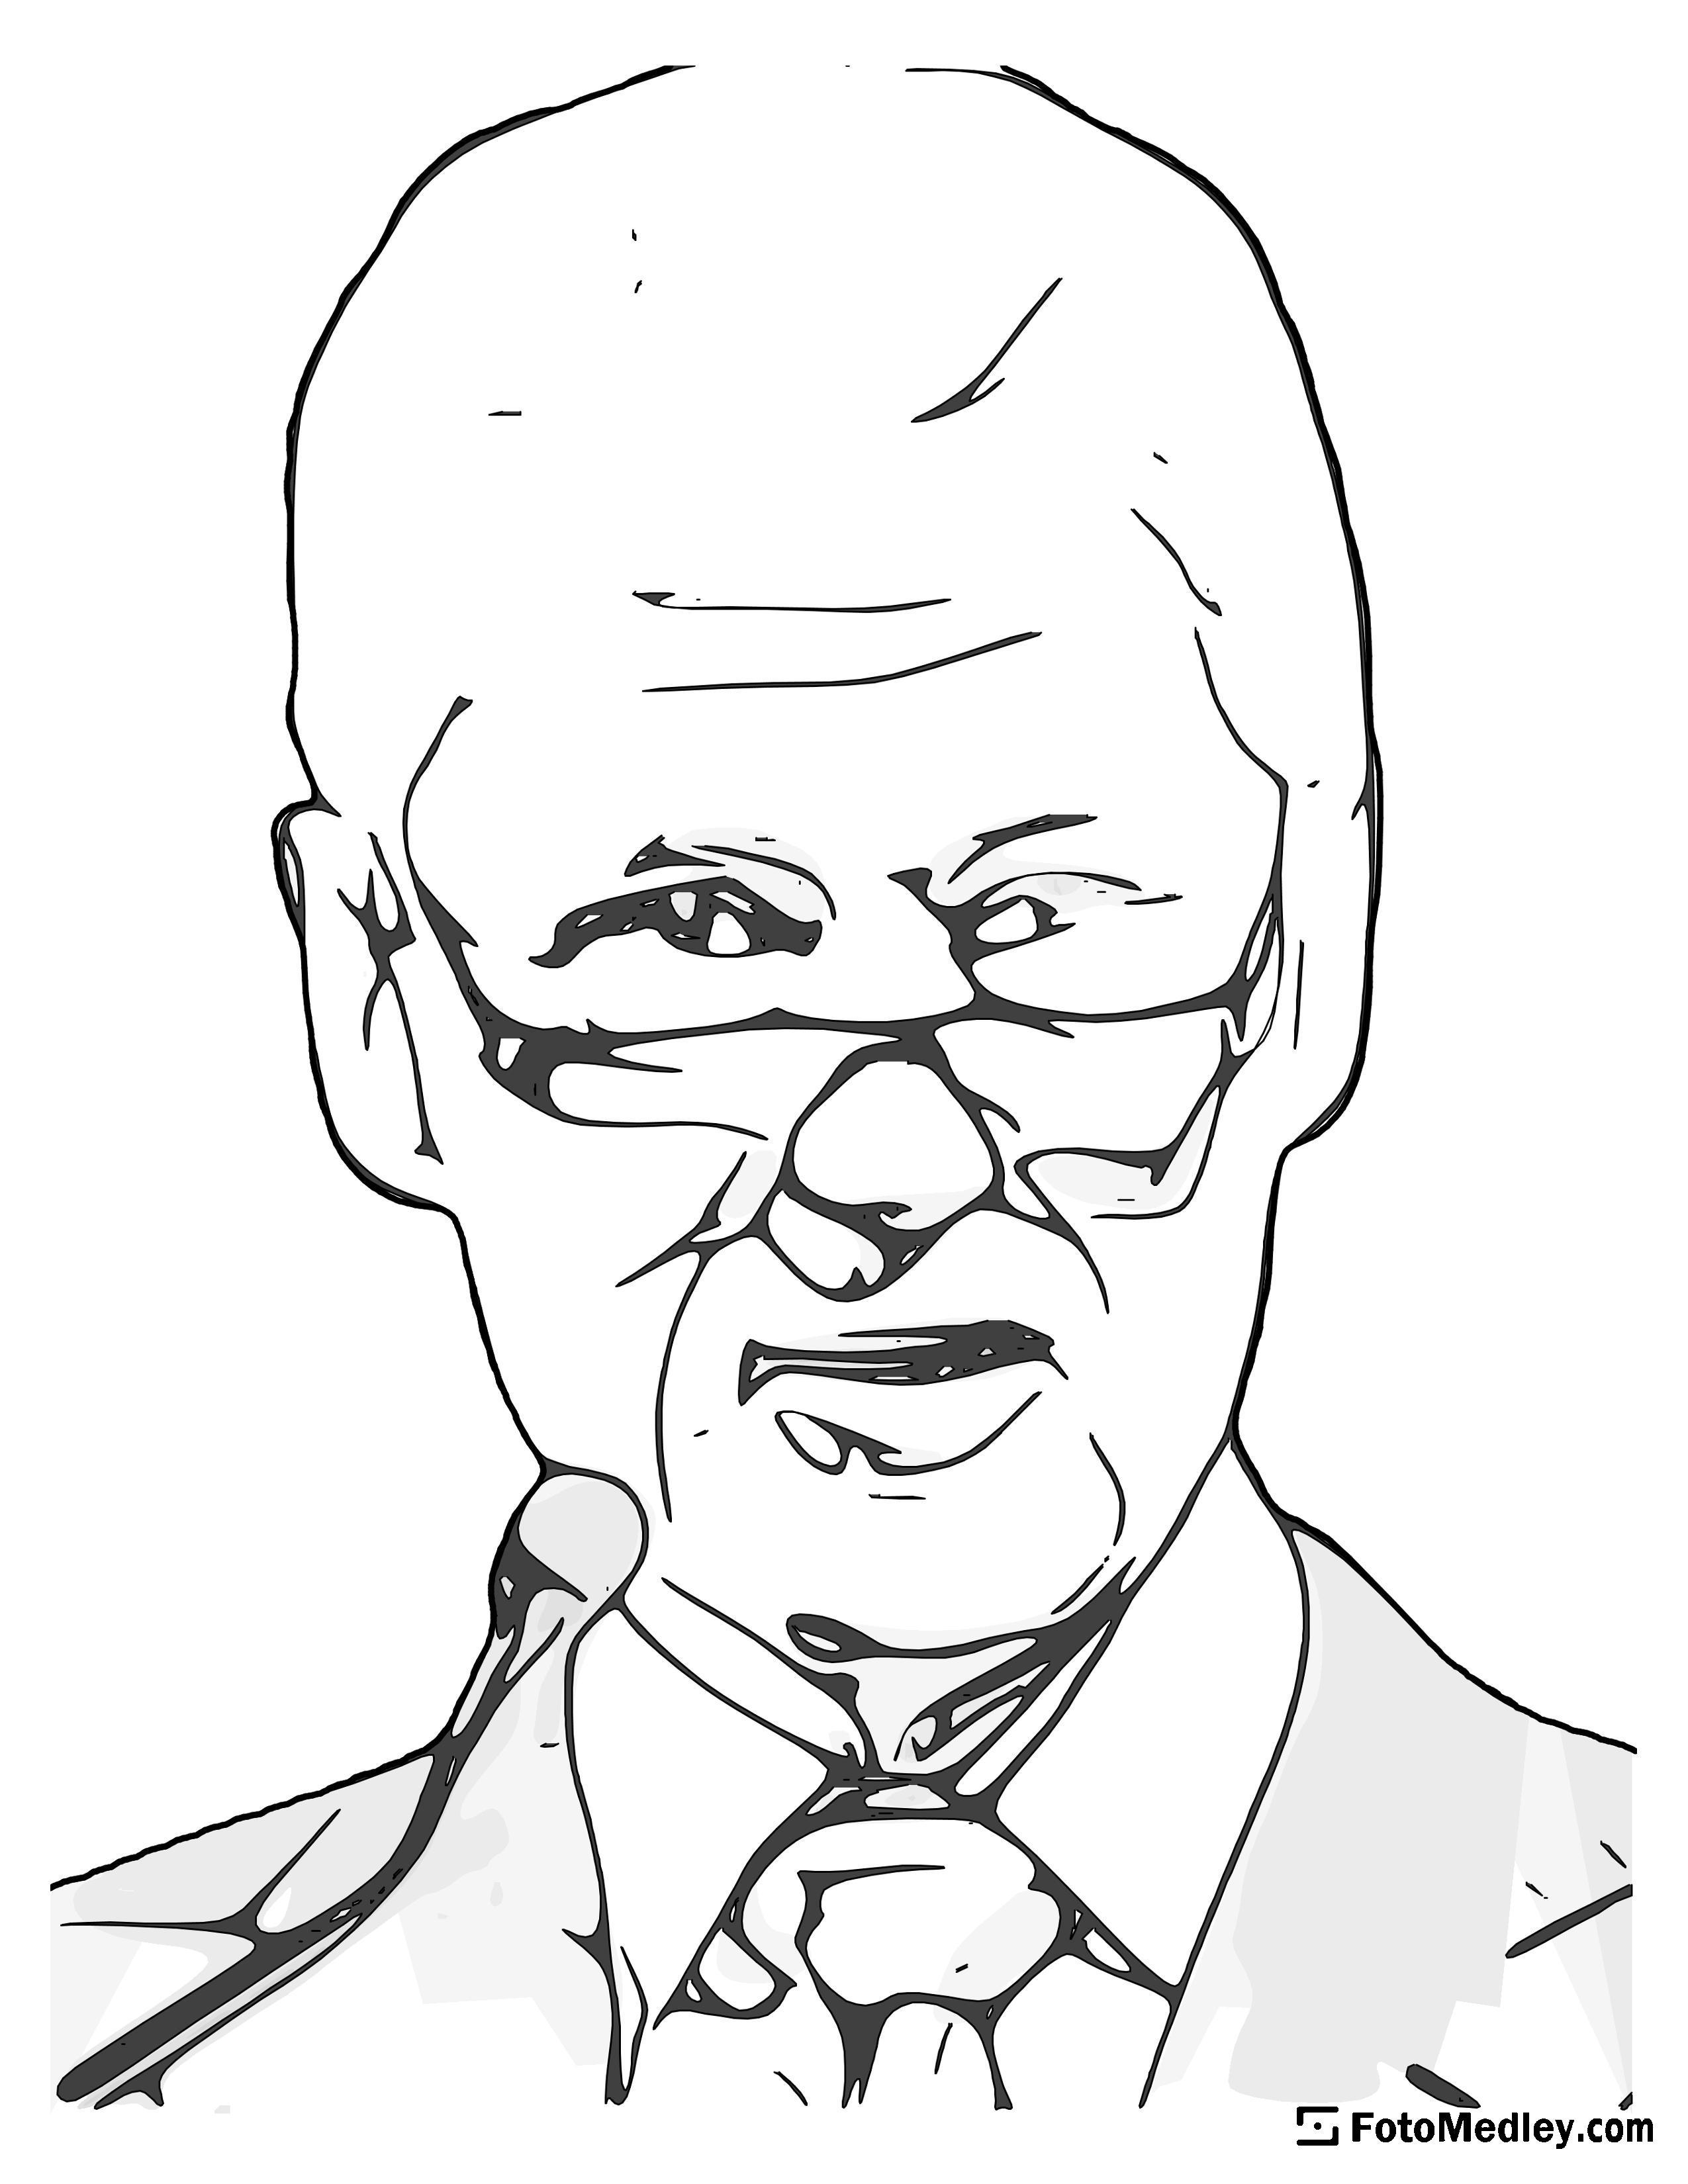 A cartoon style coloring sketch of William J. Clinton, 42nd President of the United States.